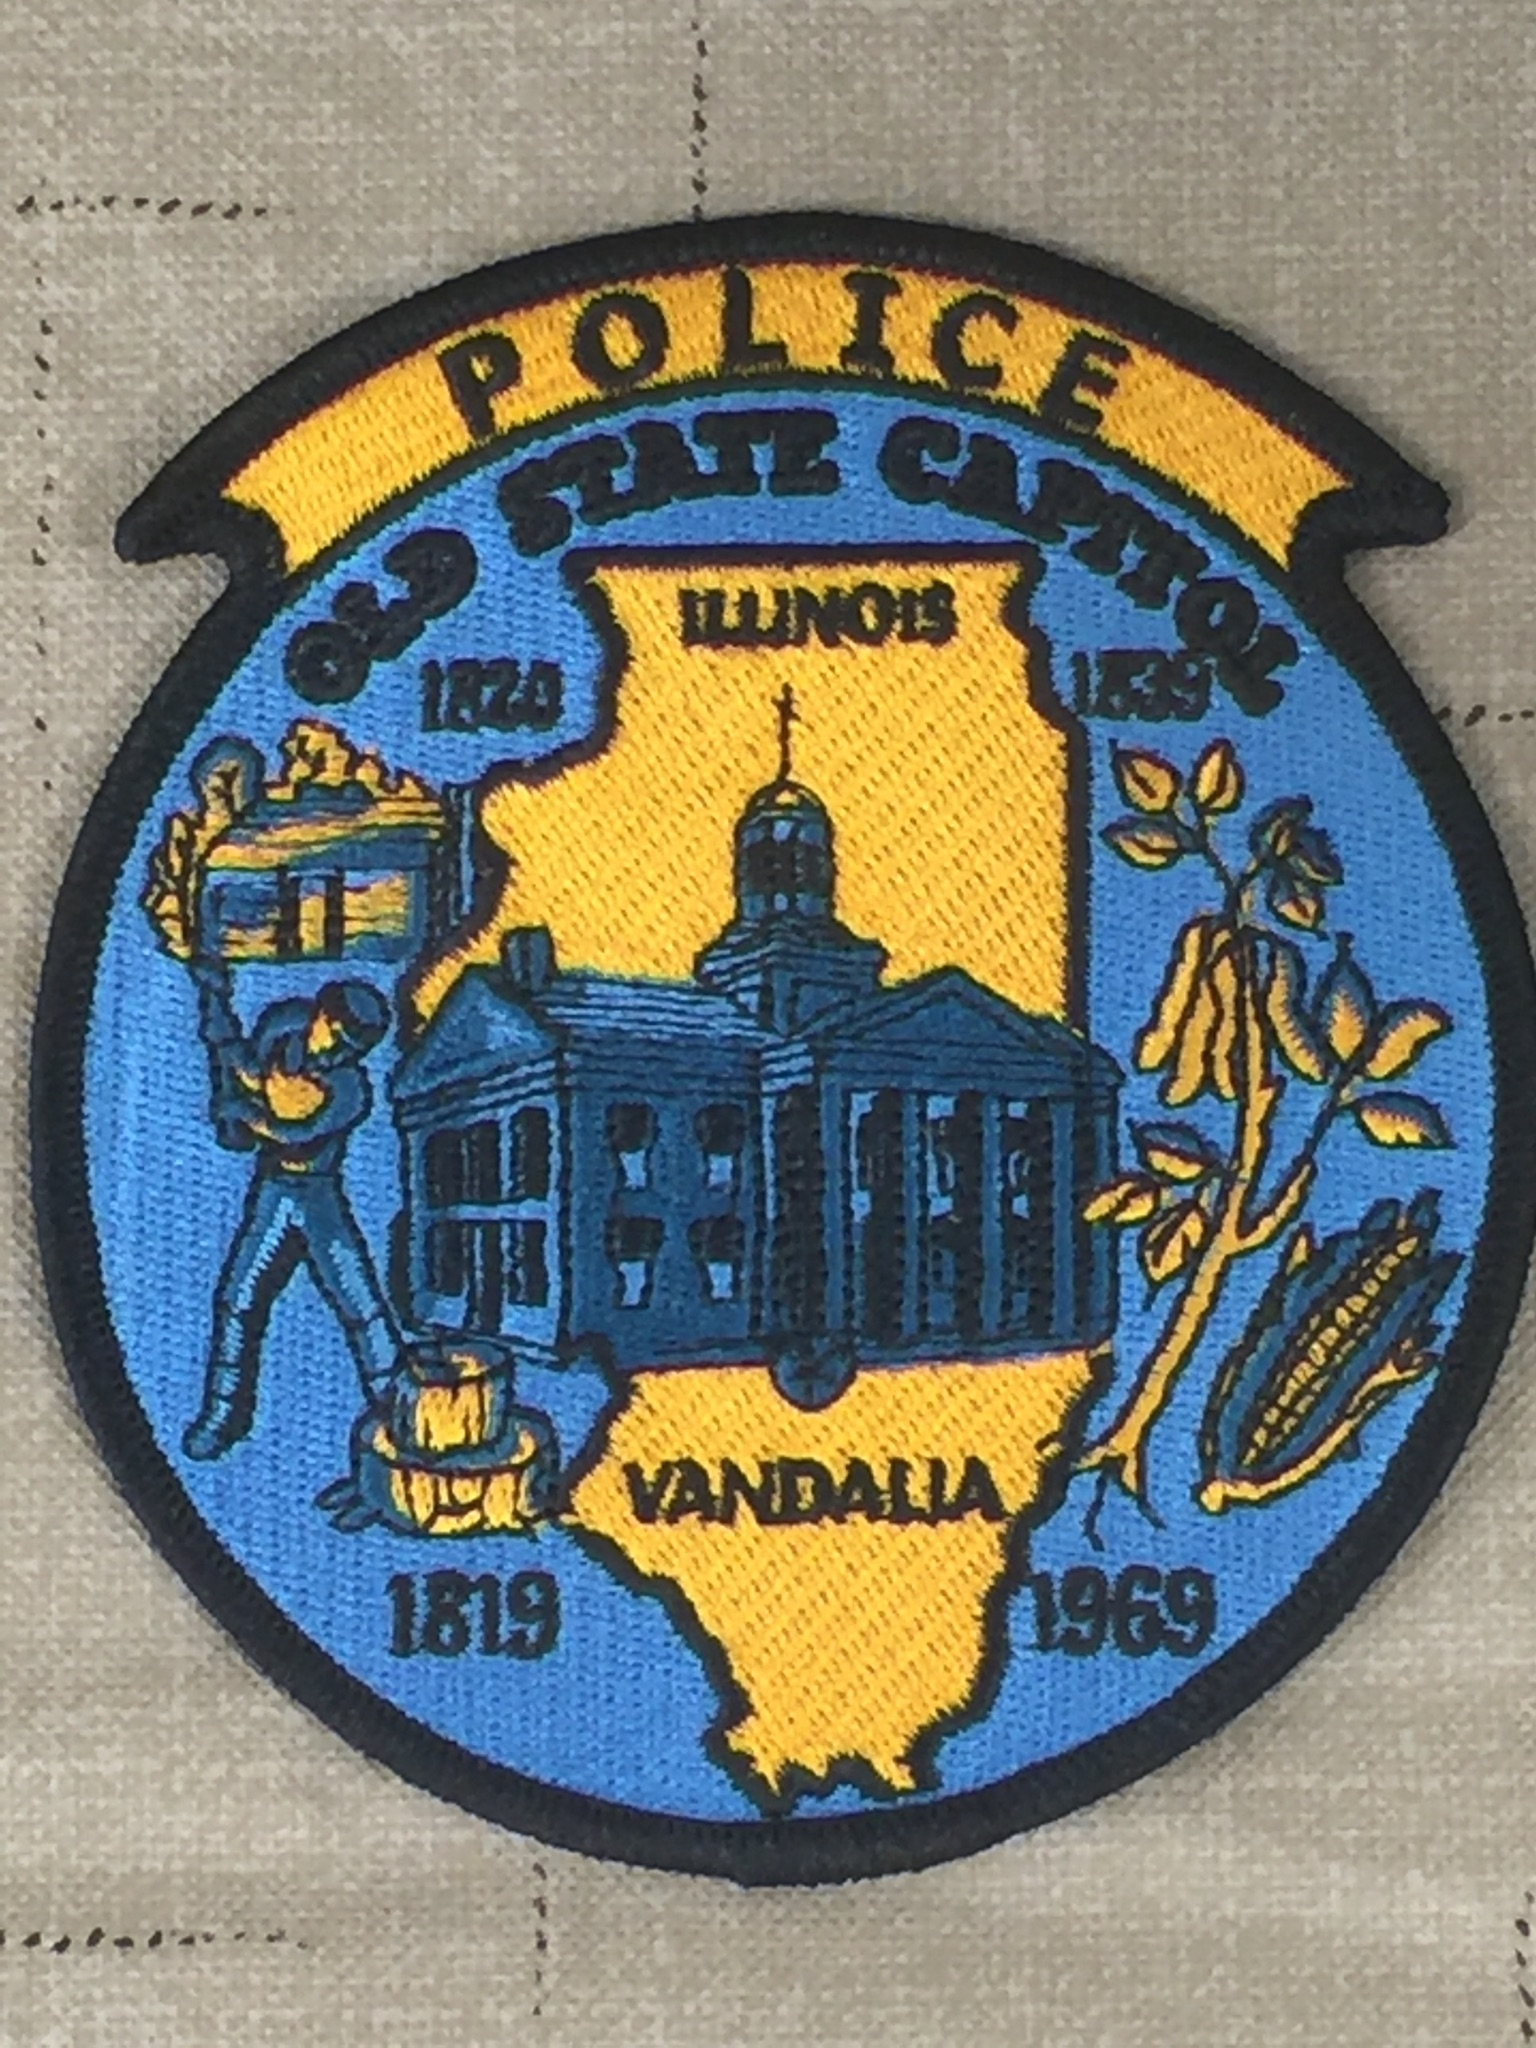 Vandalia PD looking for public's help in theft of camper